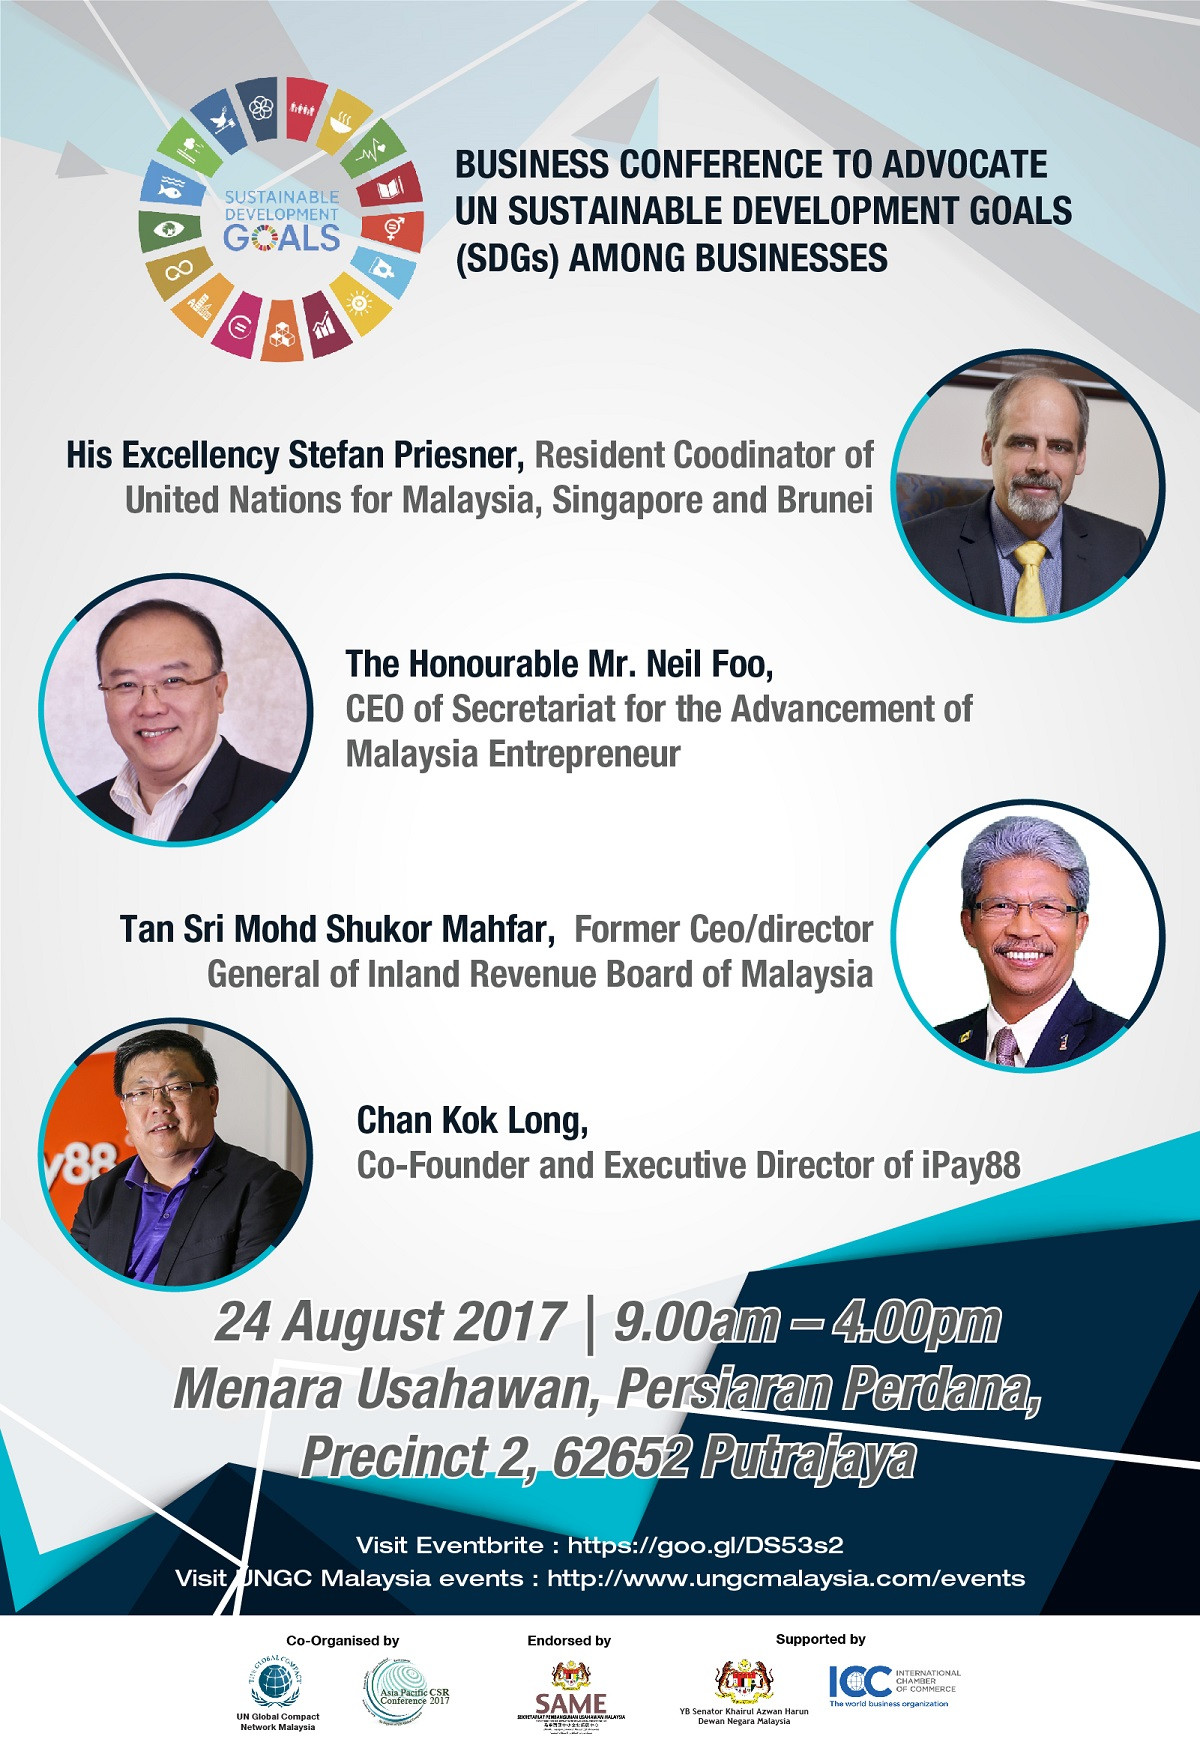 BUSINESS CONFERENCE TO ADVOCATE UN SUSTAINABLE DEVELOPMENT GOALS (SDGs) AMONG BUSINESSES Flyer